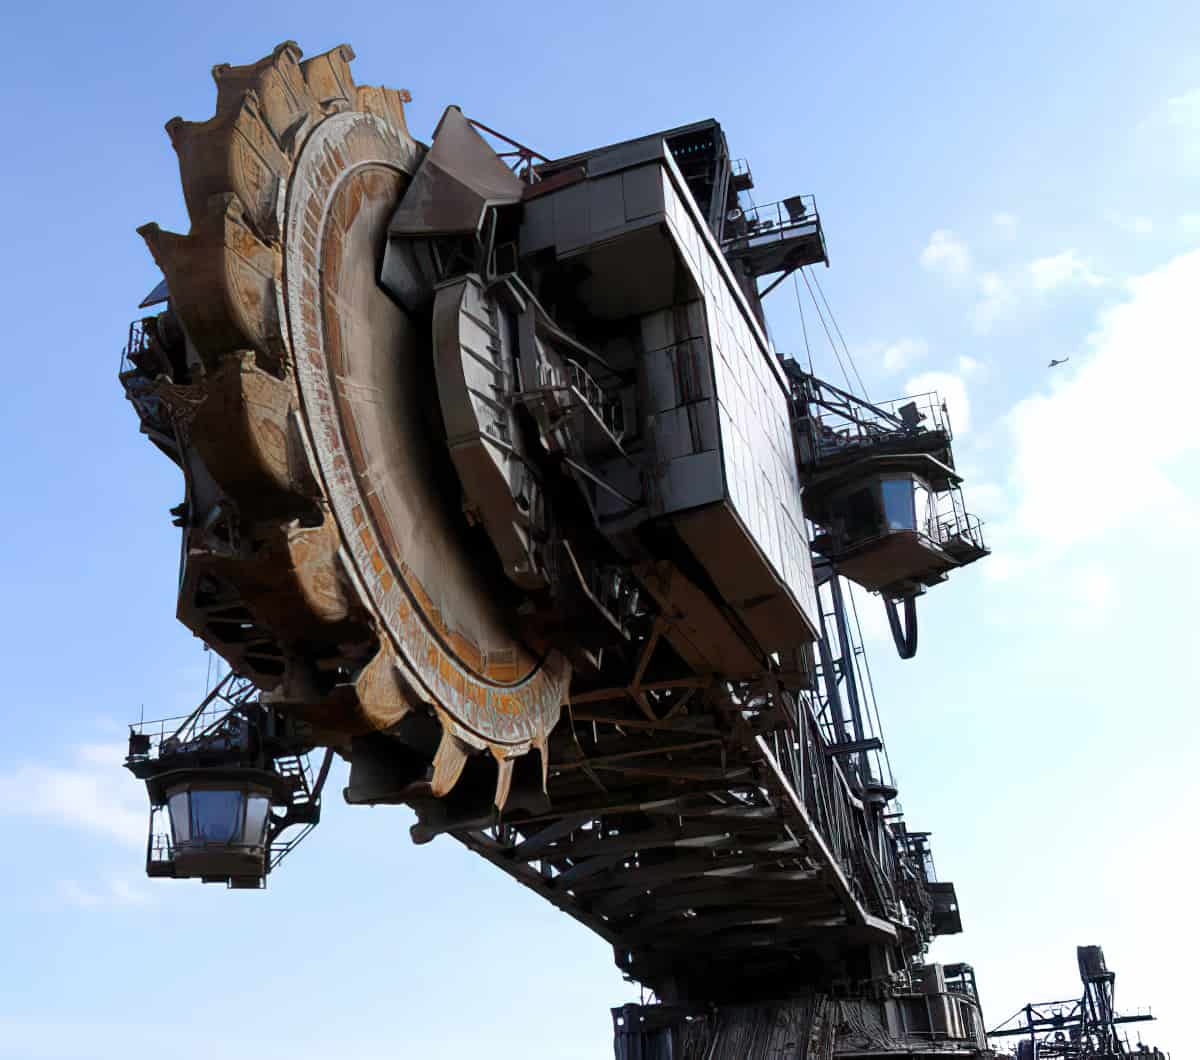 Krupp Bagger 288 Mine Stripper biggest construction vehicles